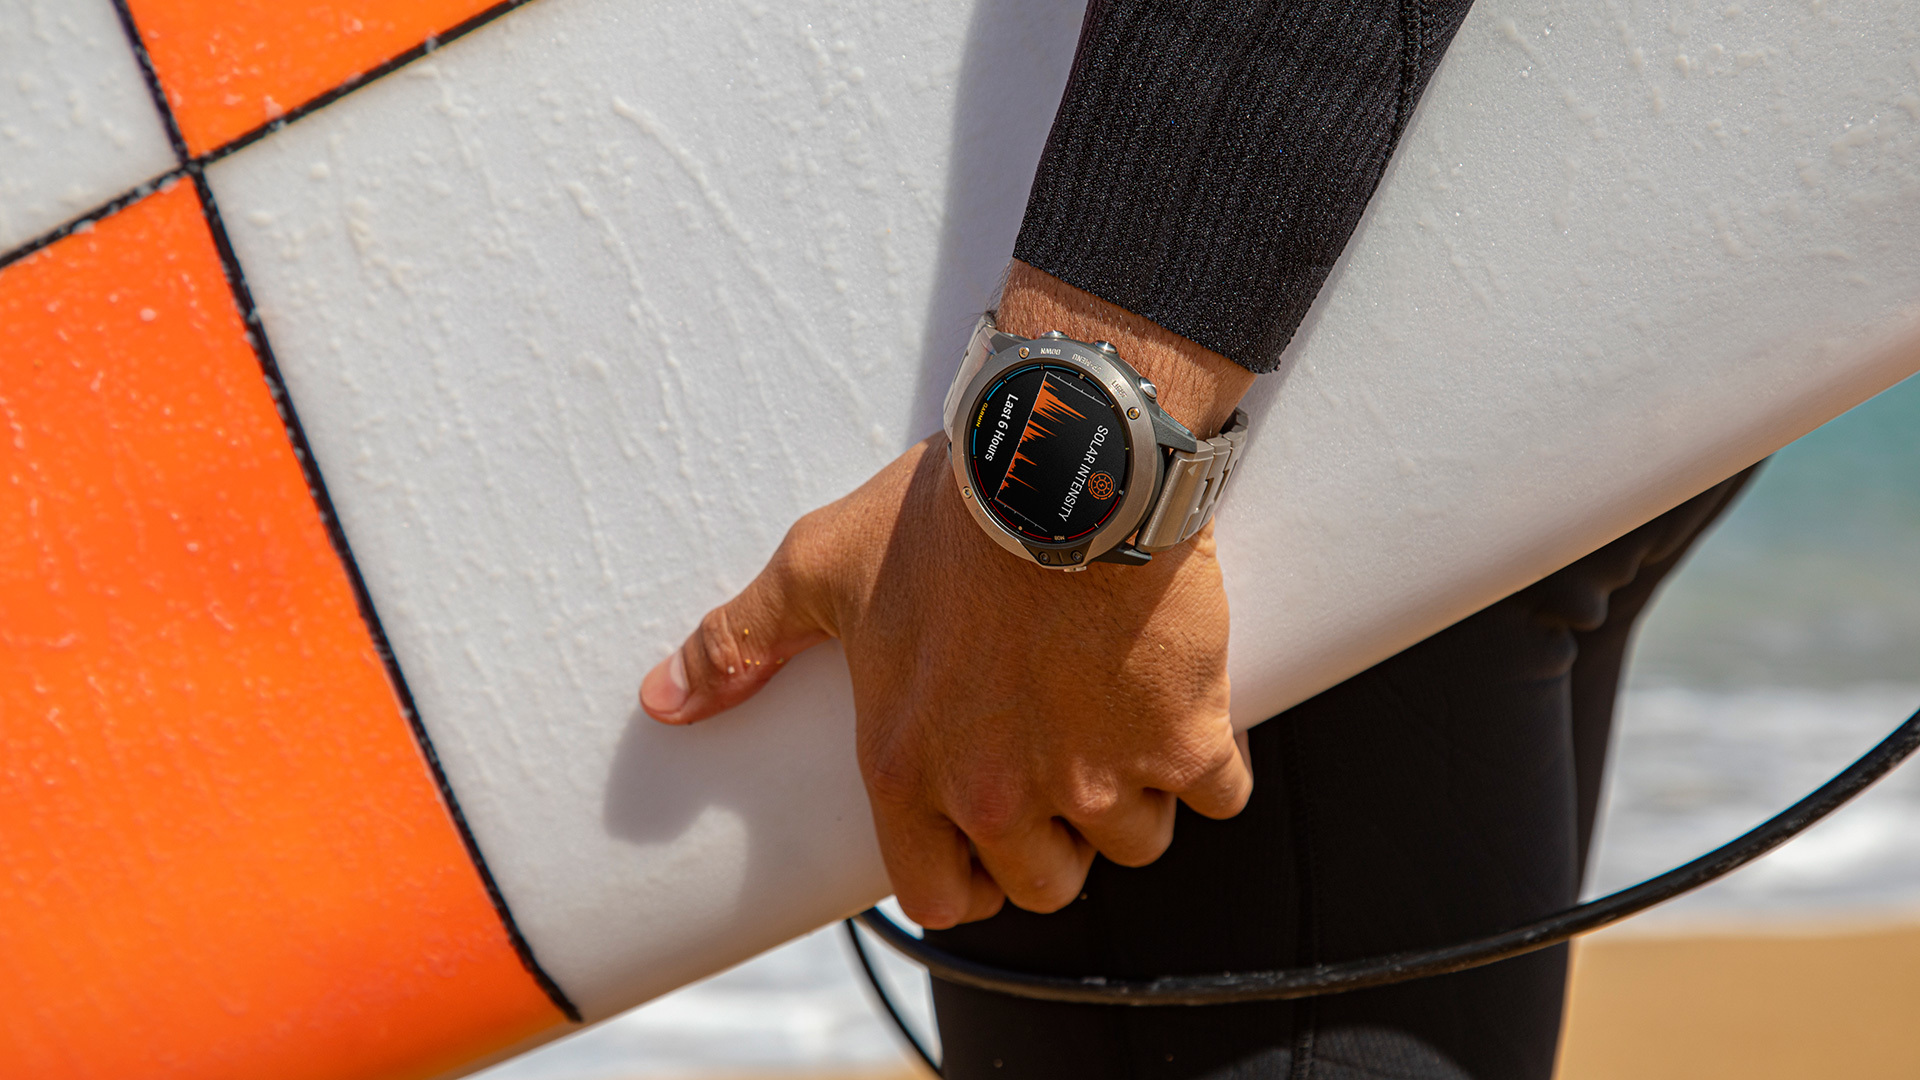 A person wearing an outdoor watch